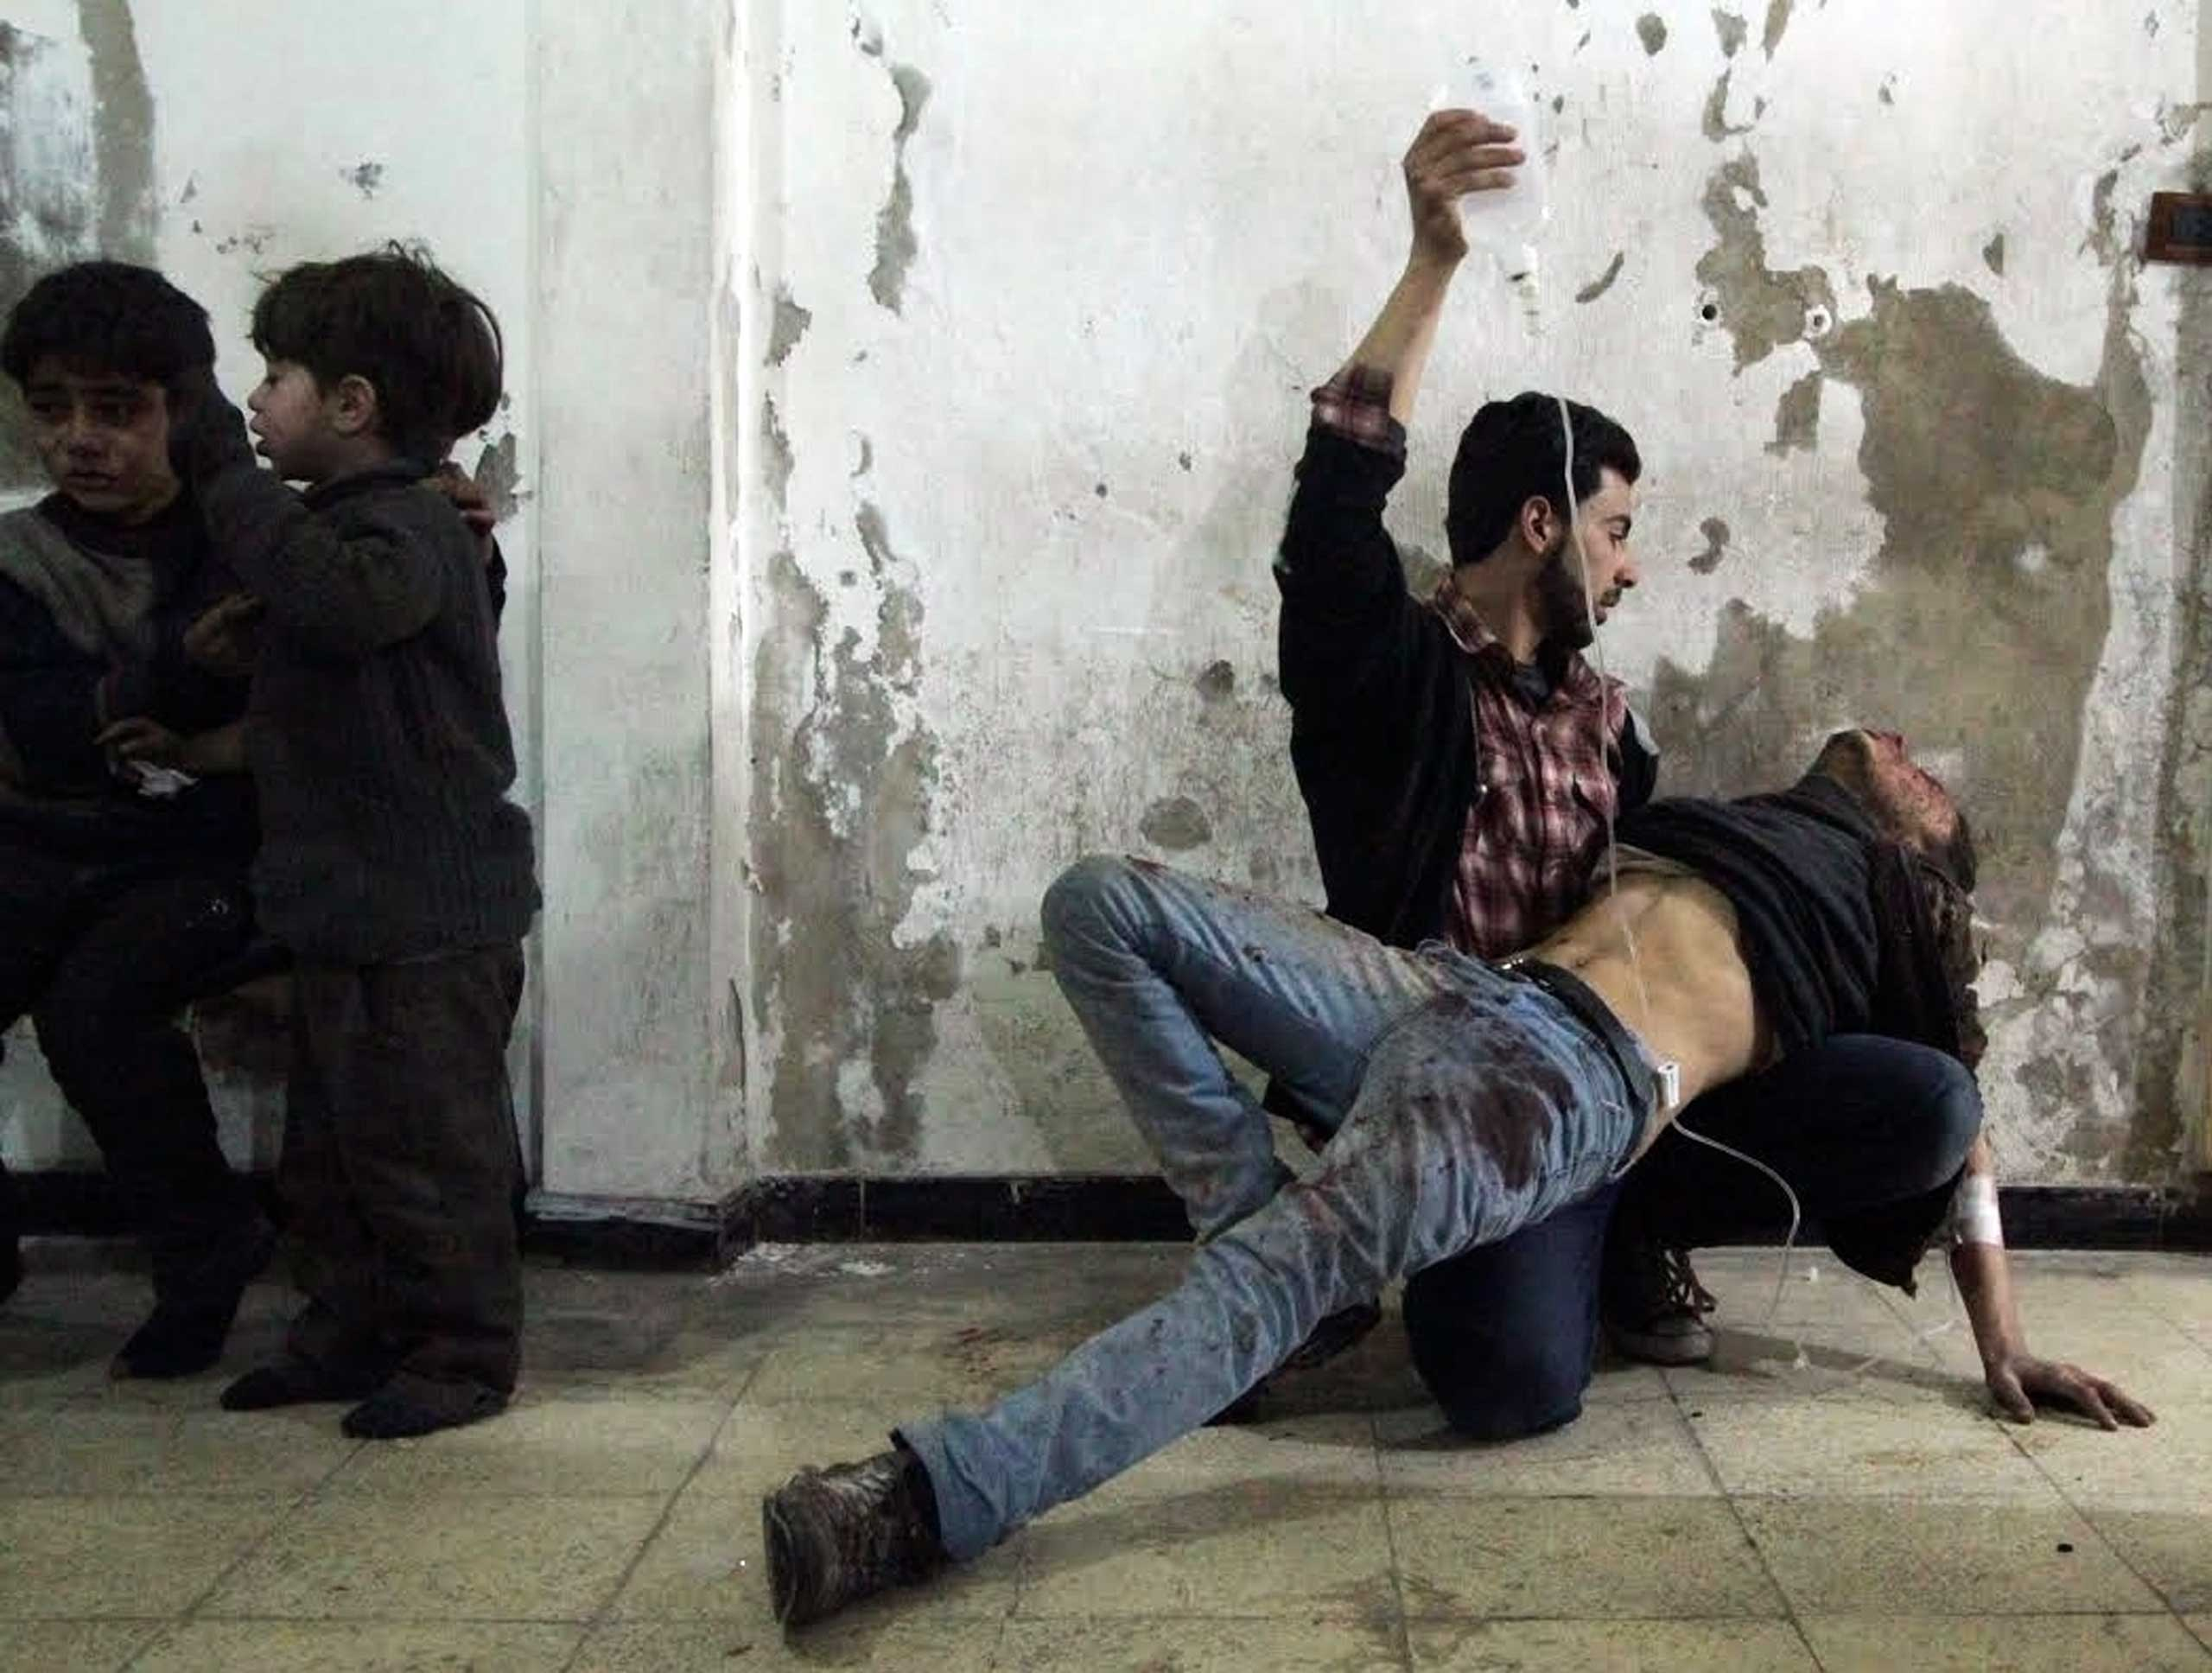 Feb. 2, 2015. A man gives medical assistance to an injured man as two wounded children wait nearby at a field hospital after what activists said was an air strike by forces of Syria's President Bashar al-Assad in the Duma neighbourhood of Damascus.